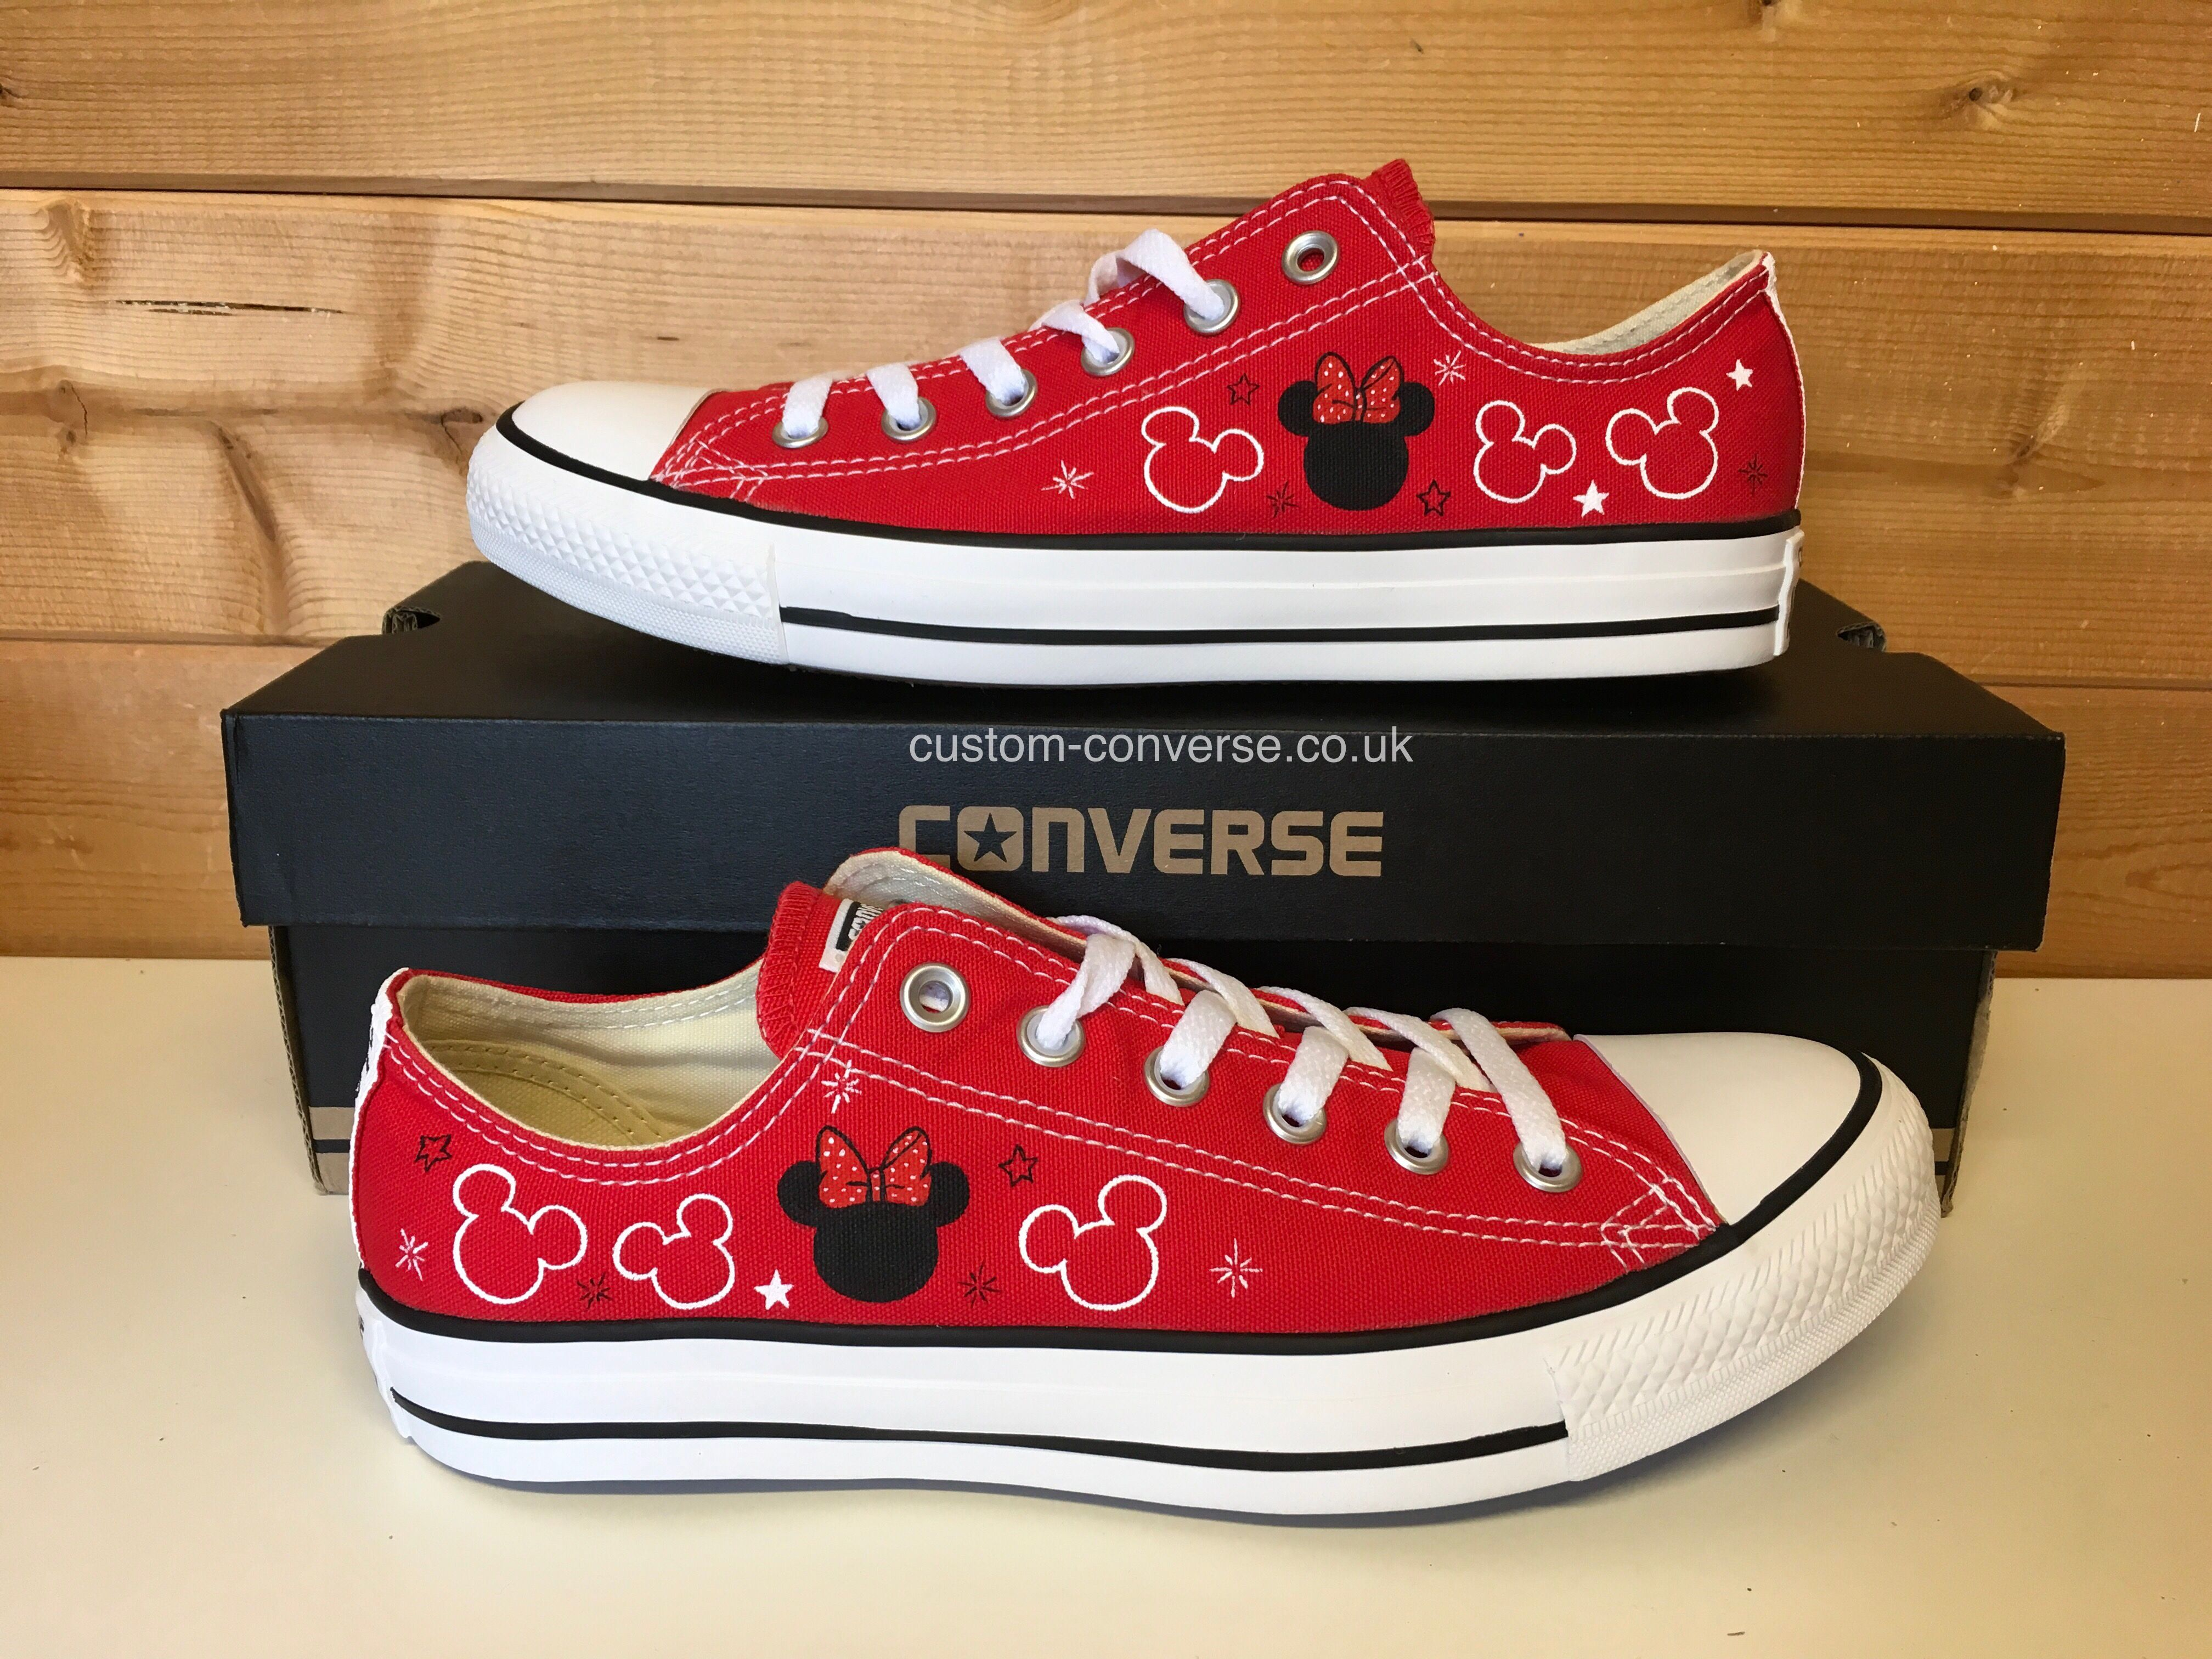 Minnie & Mickey in 2020 | Converse, Custom converse, Disney